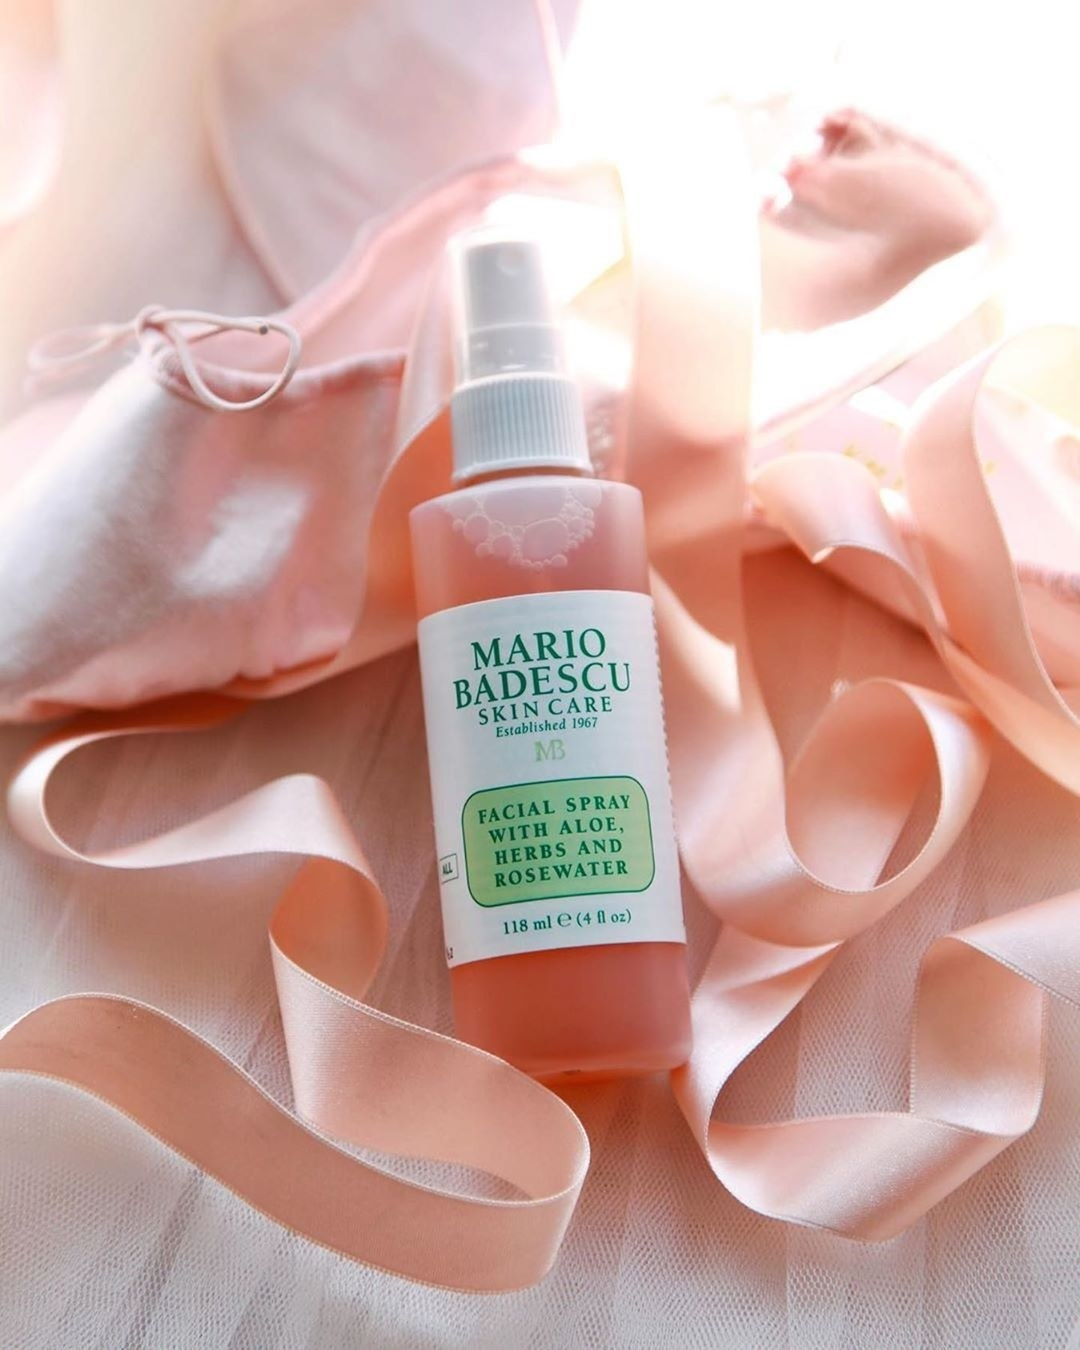 A bottle of the facial spray rests on some tulle and ribbon